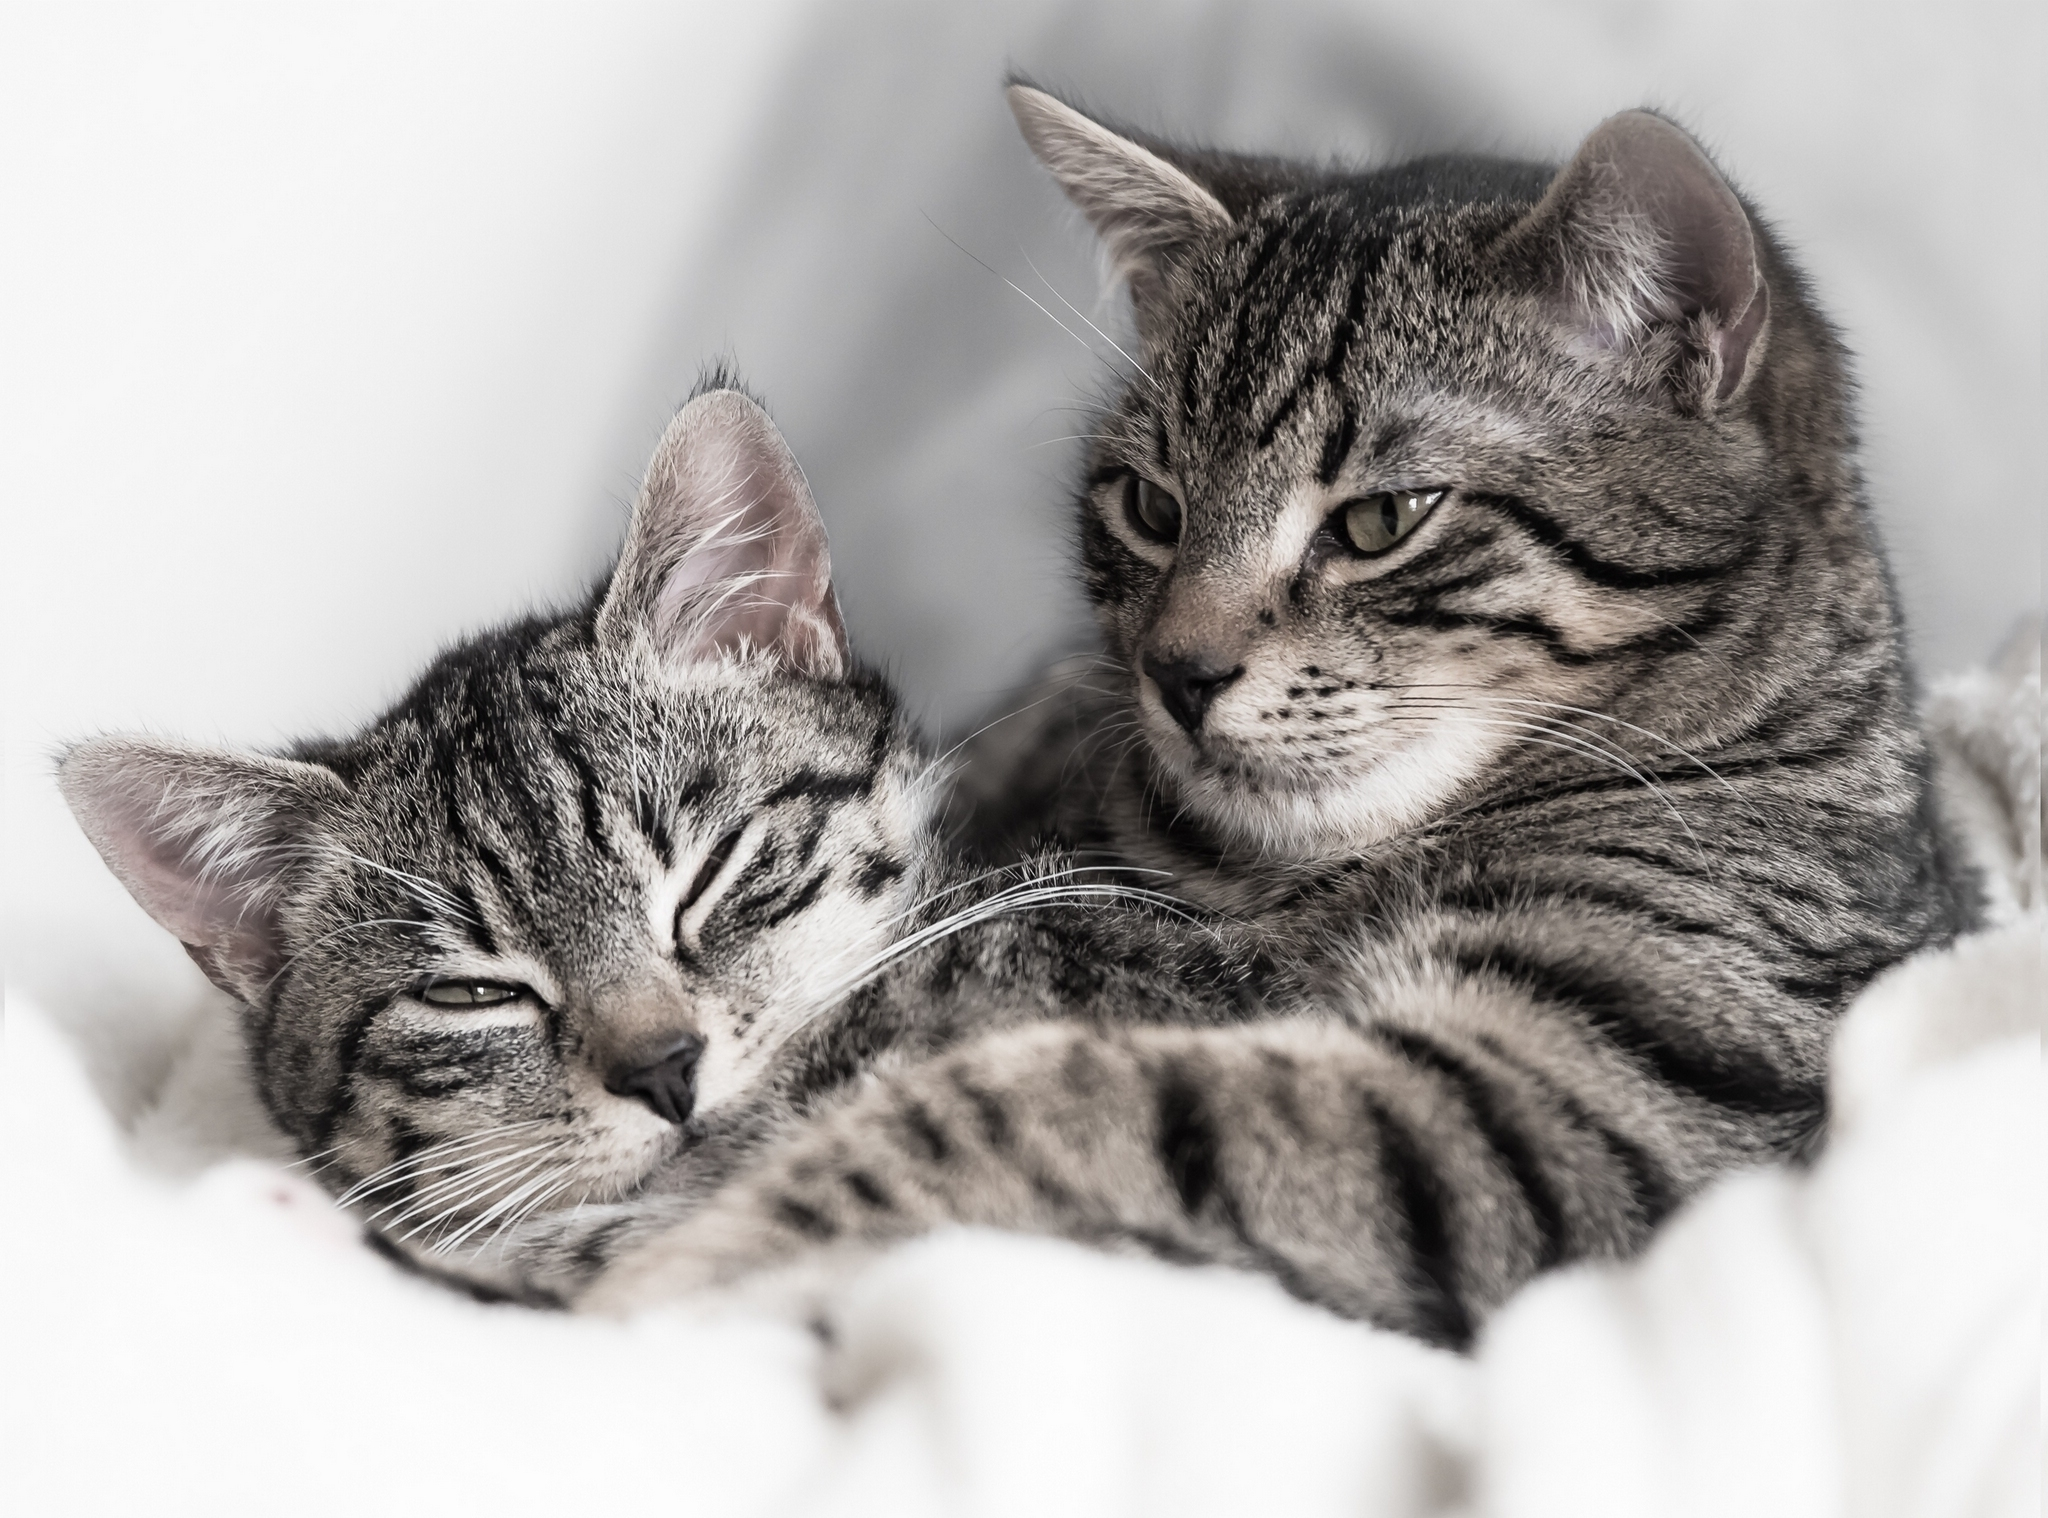 131527 Screensavers and Wallpapers Cats for phone. Download Animals, Cats, Kitty, Kitten, Couple, Pair, Striped pictures for free